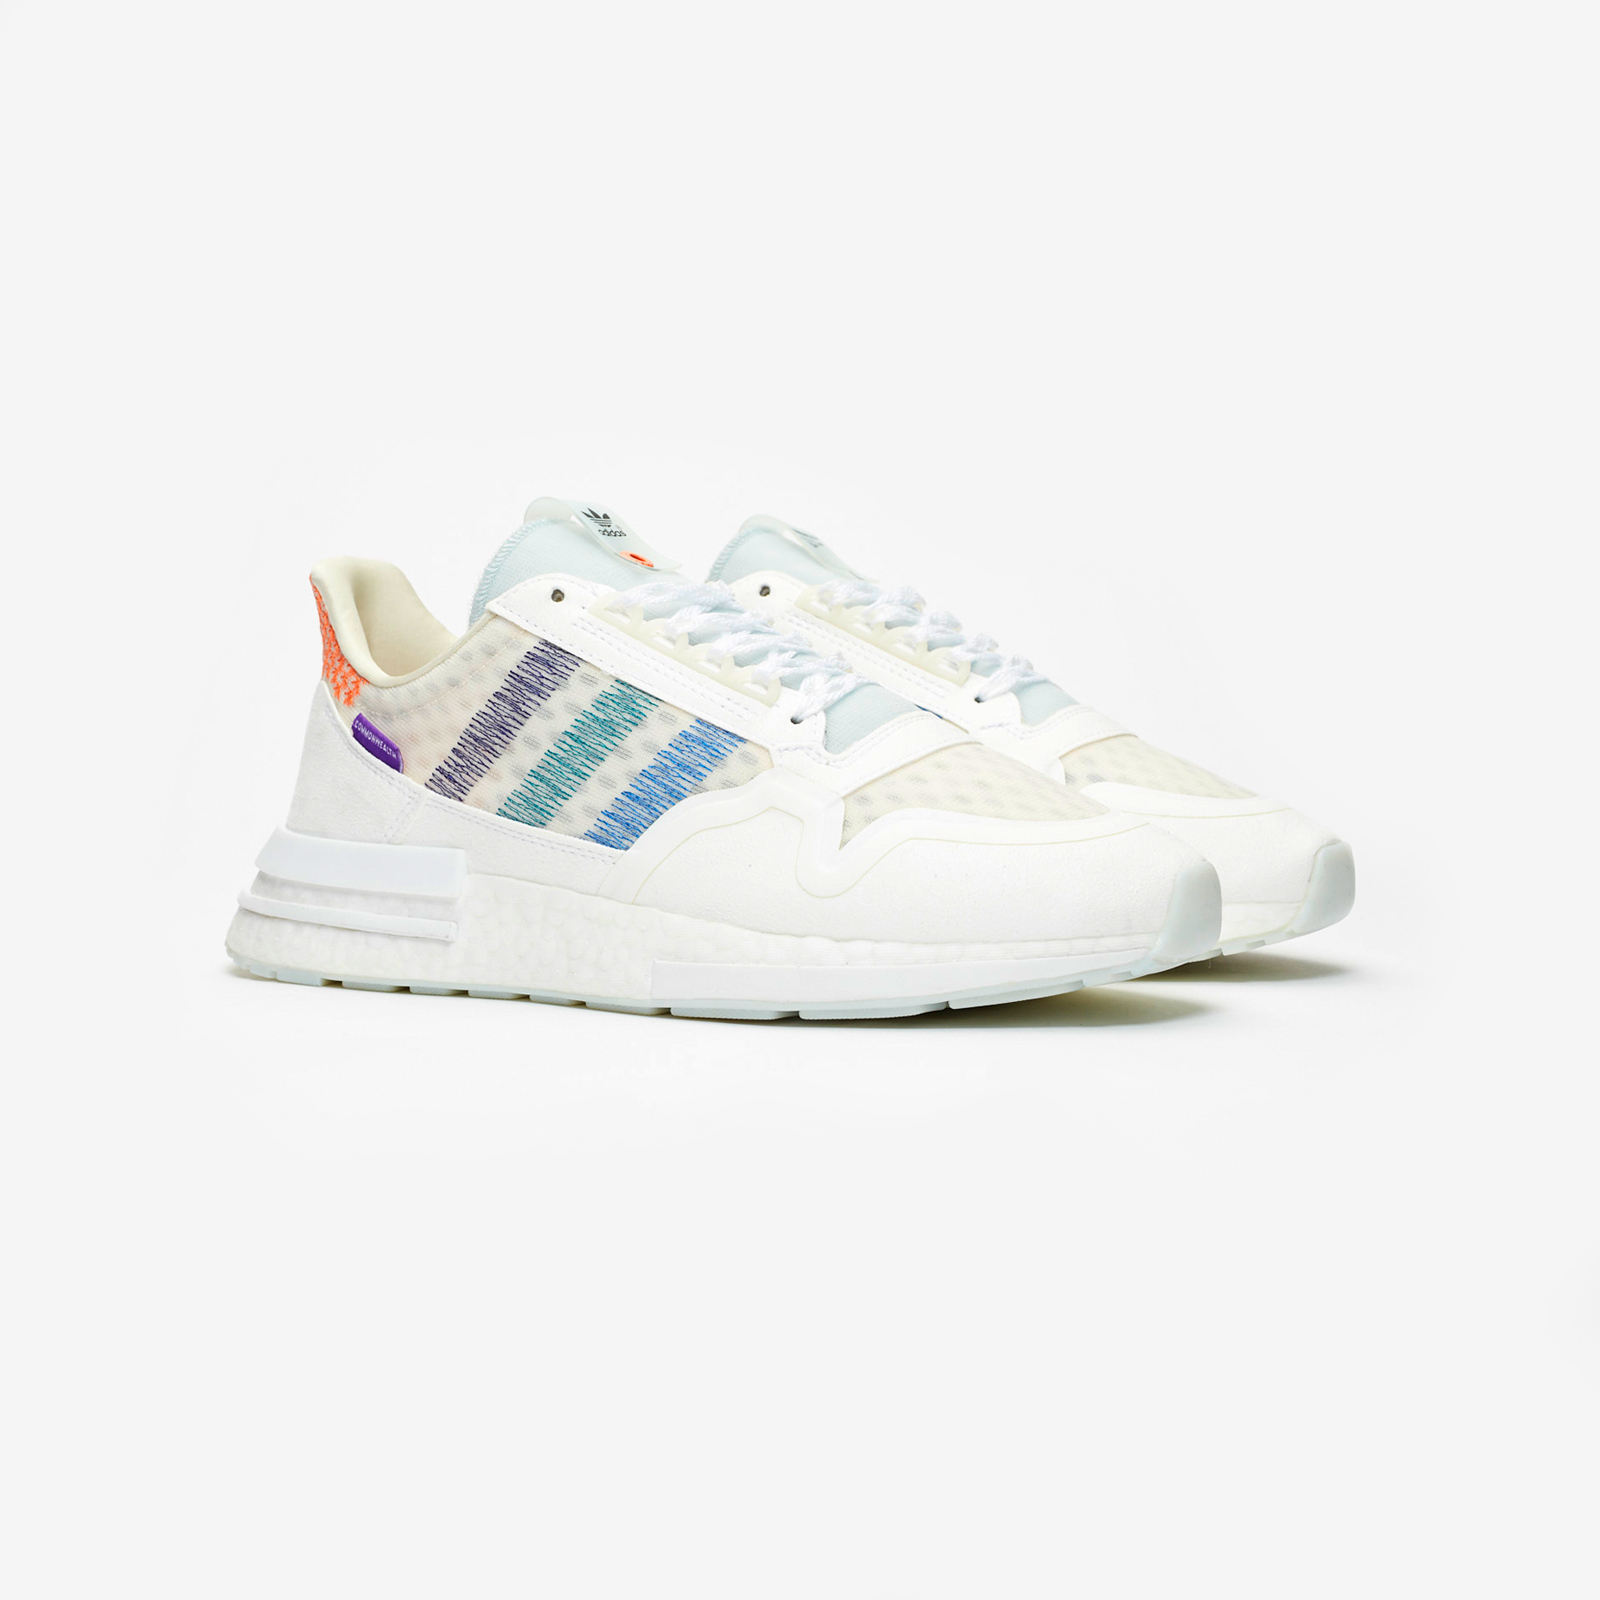 add34744c adidas ZX 500 x Commonwealth - Db3510 - Sneakersnstuff